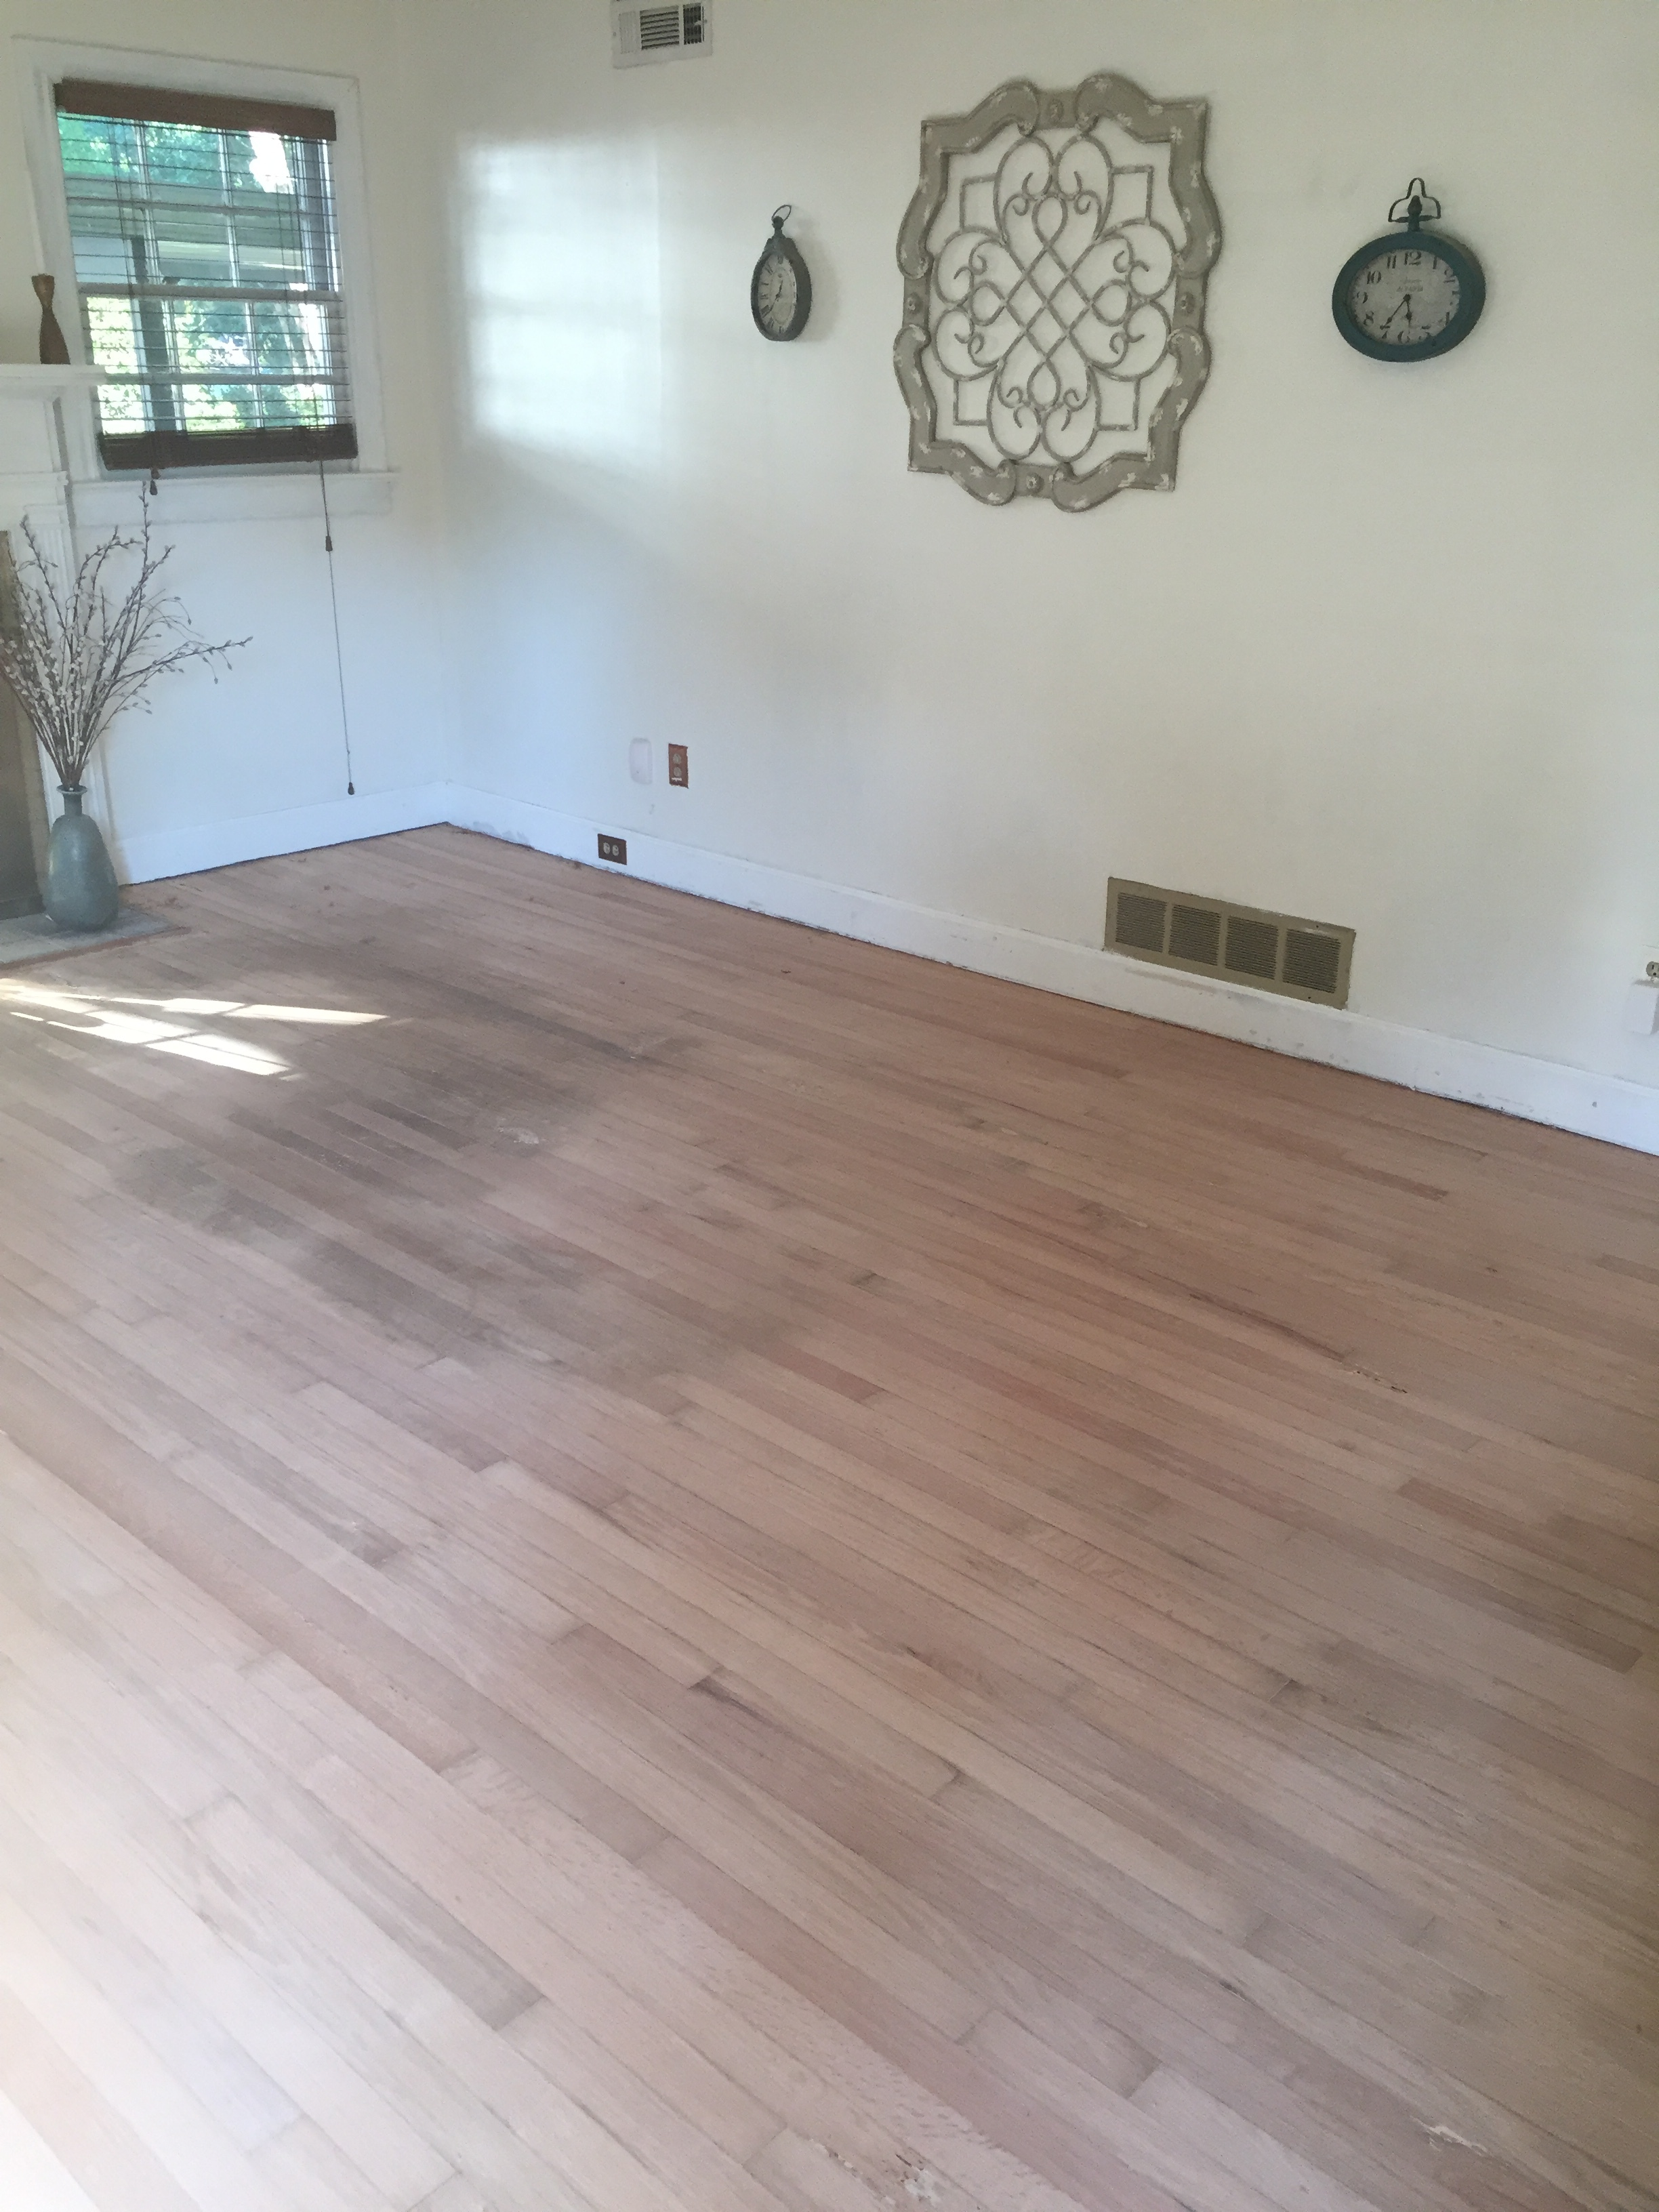 Living Room with newly sanded floors!